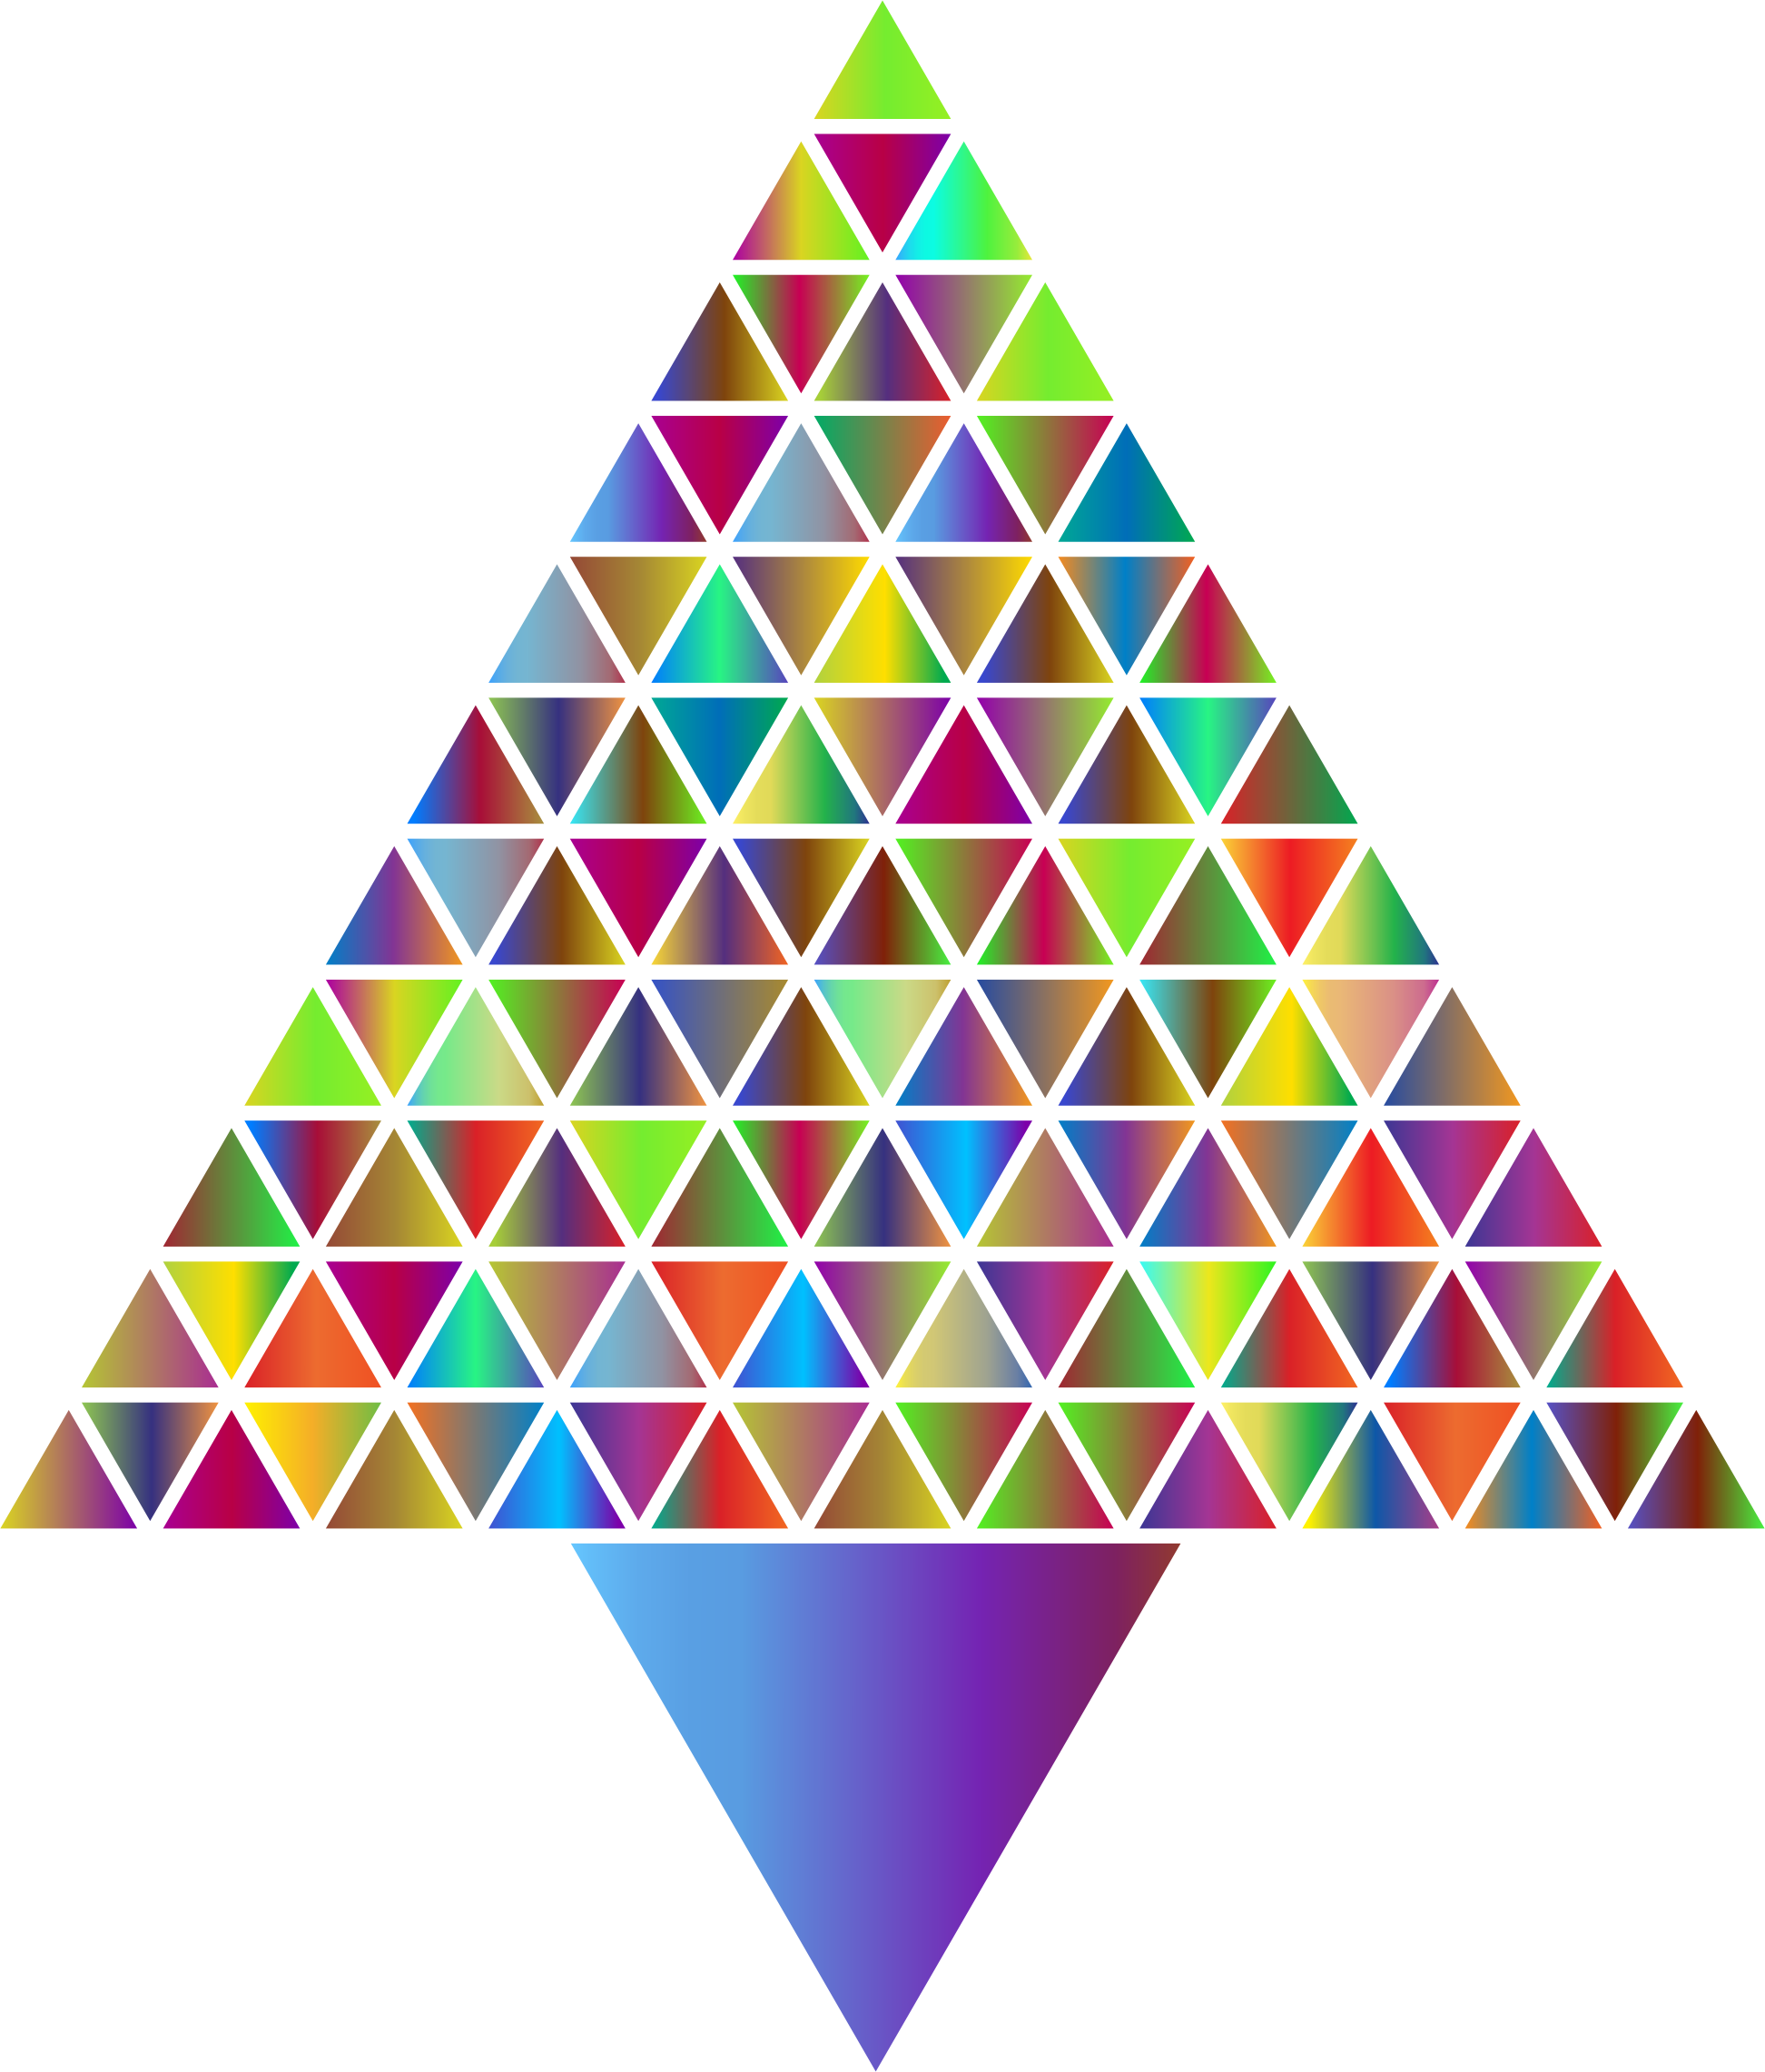 Prismatic Abstract Triangular Christmas Tree 4 by GDJ